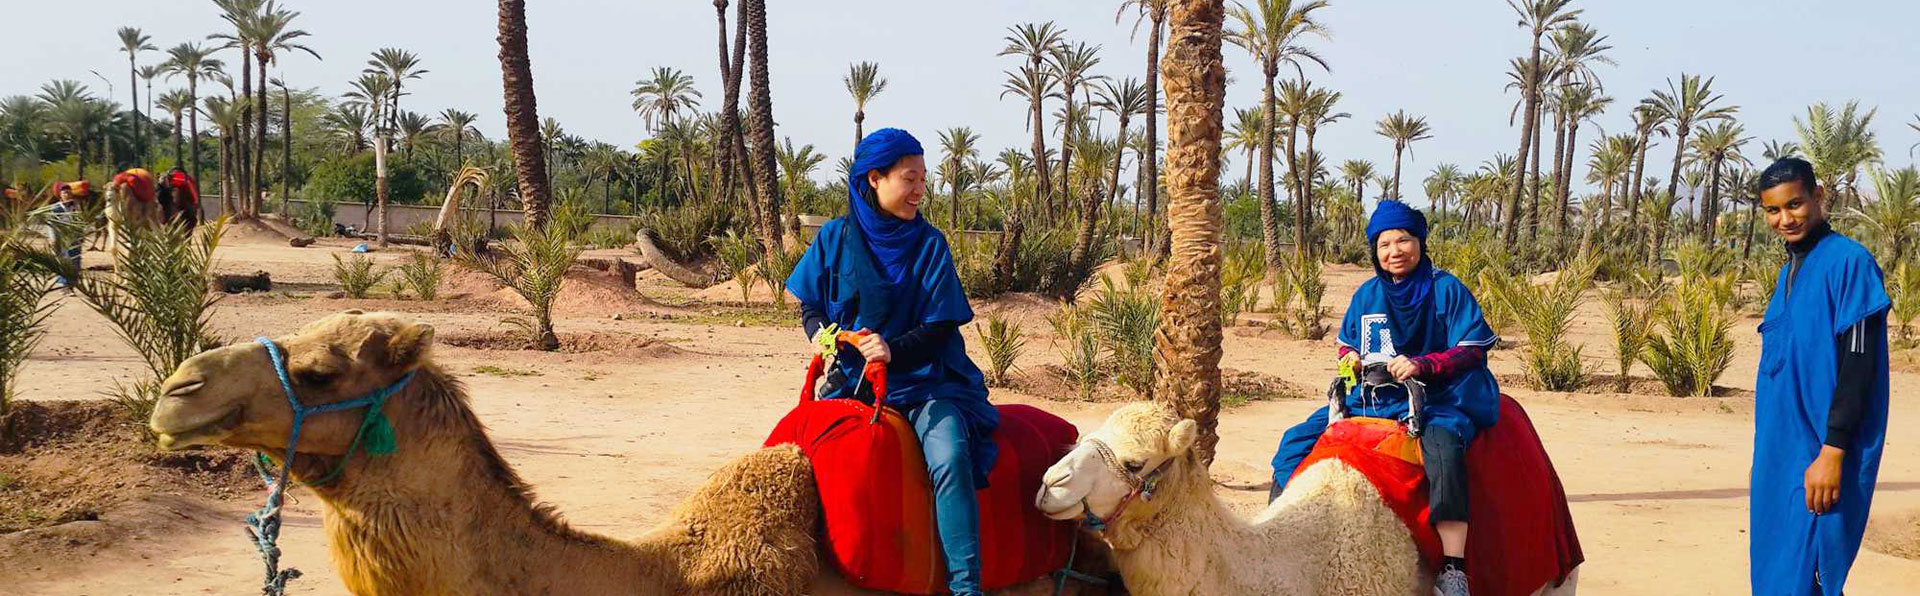 Camel Ride Marrakech in the Palm Grove - Camel Riding from